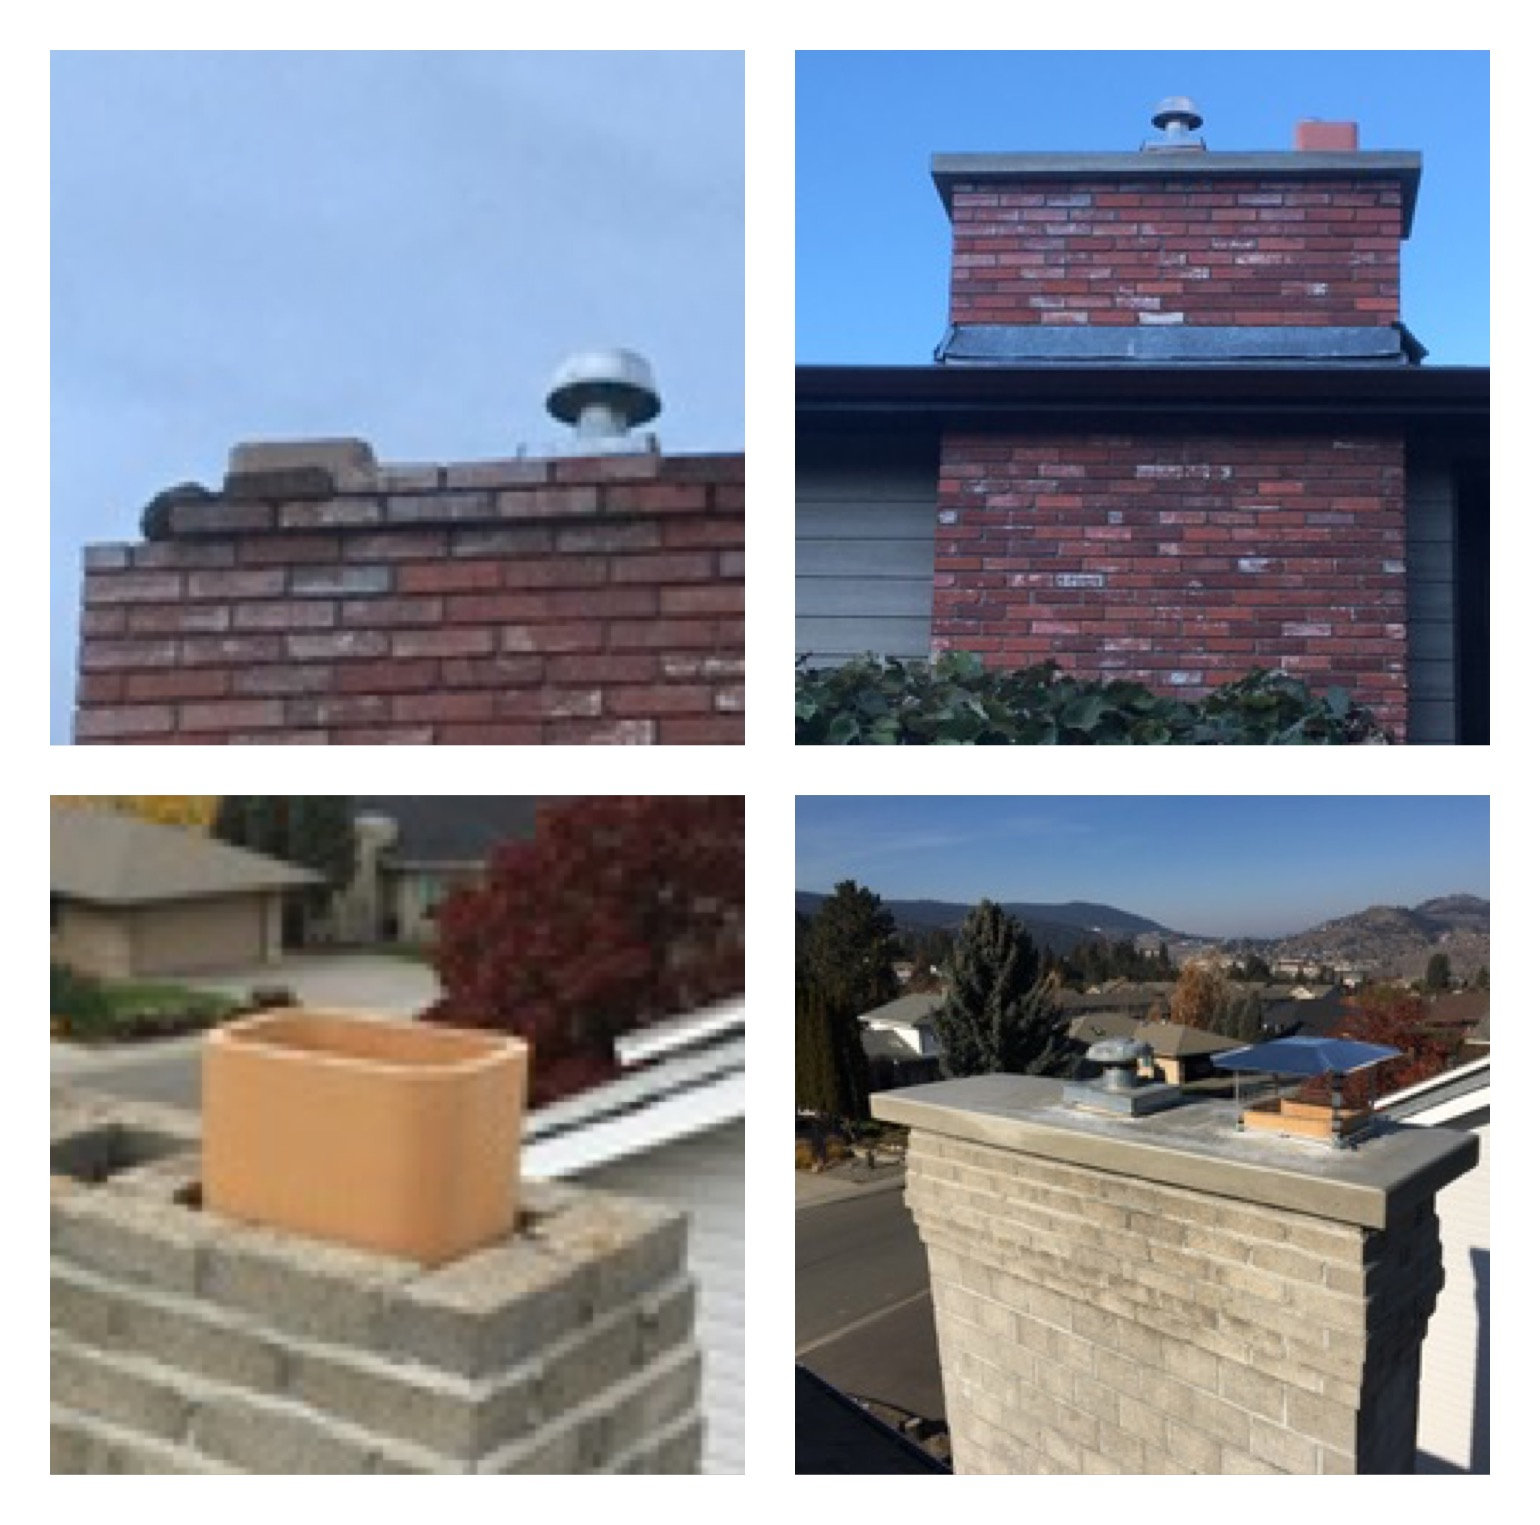 Two residential chimneys before and after showing crumbling masonry before a cement cap was poured to prevent moisture from entering the roof. and chimney.